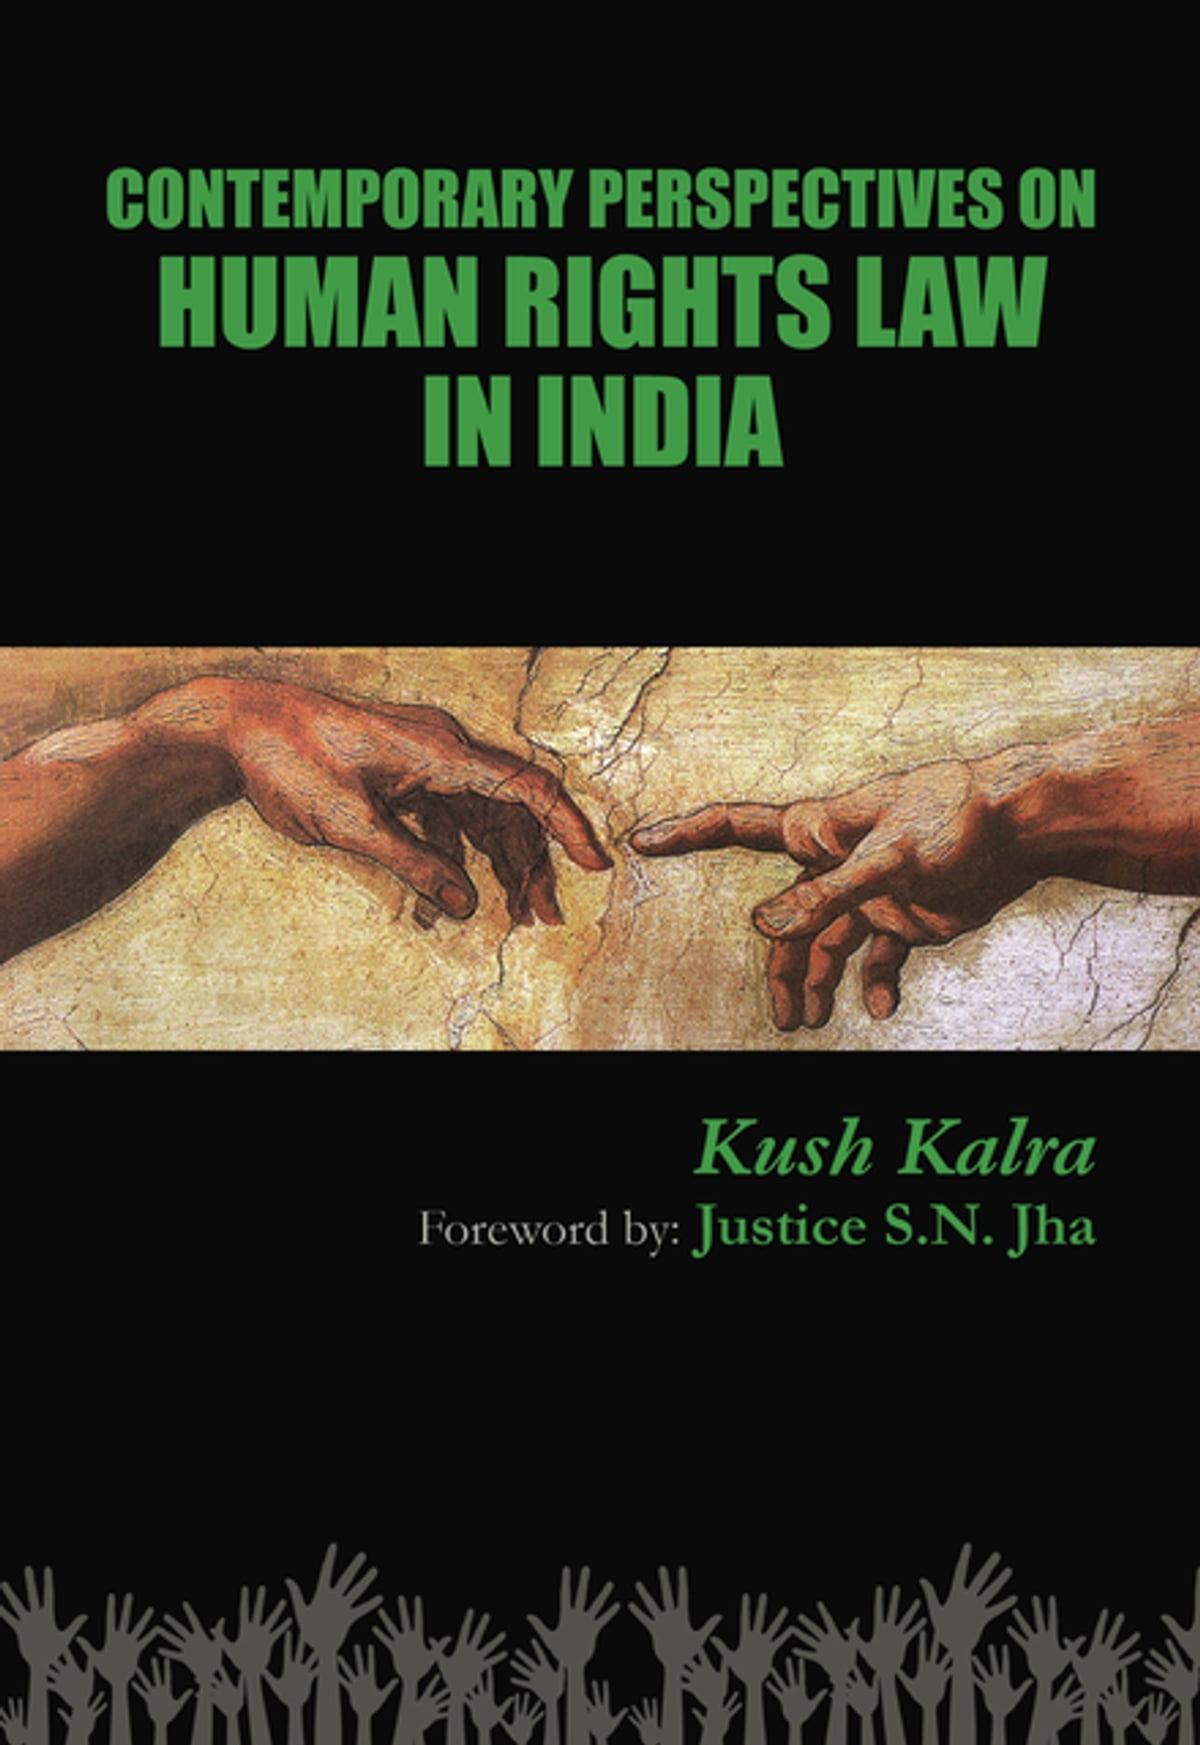 master thesis on human rights in india This is a sample essay on human rights in india for school and college students - with freedom movement the world over after world war ii the end of colonization also ended the policy of apartheid and thereby the most aggressive violation of human rights.